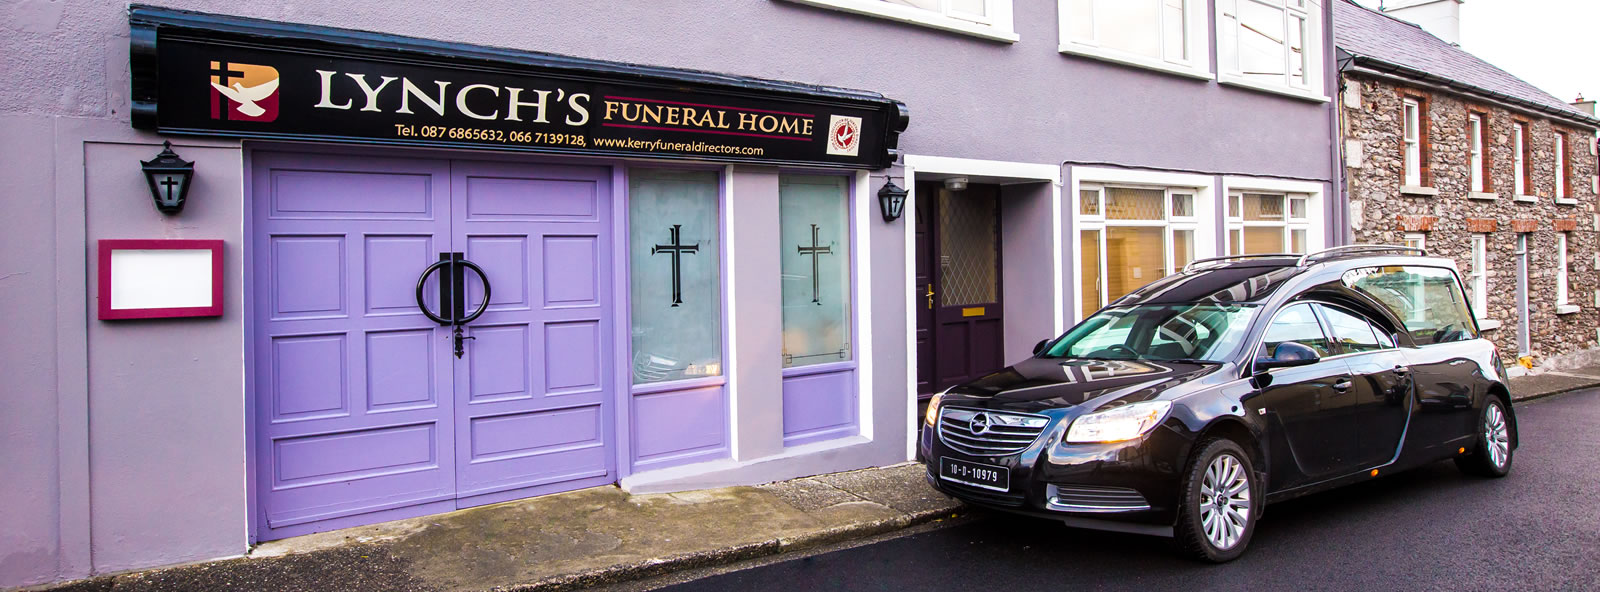 Lynch's Funeral Home Castlegregory